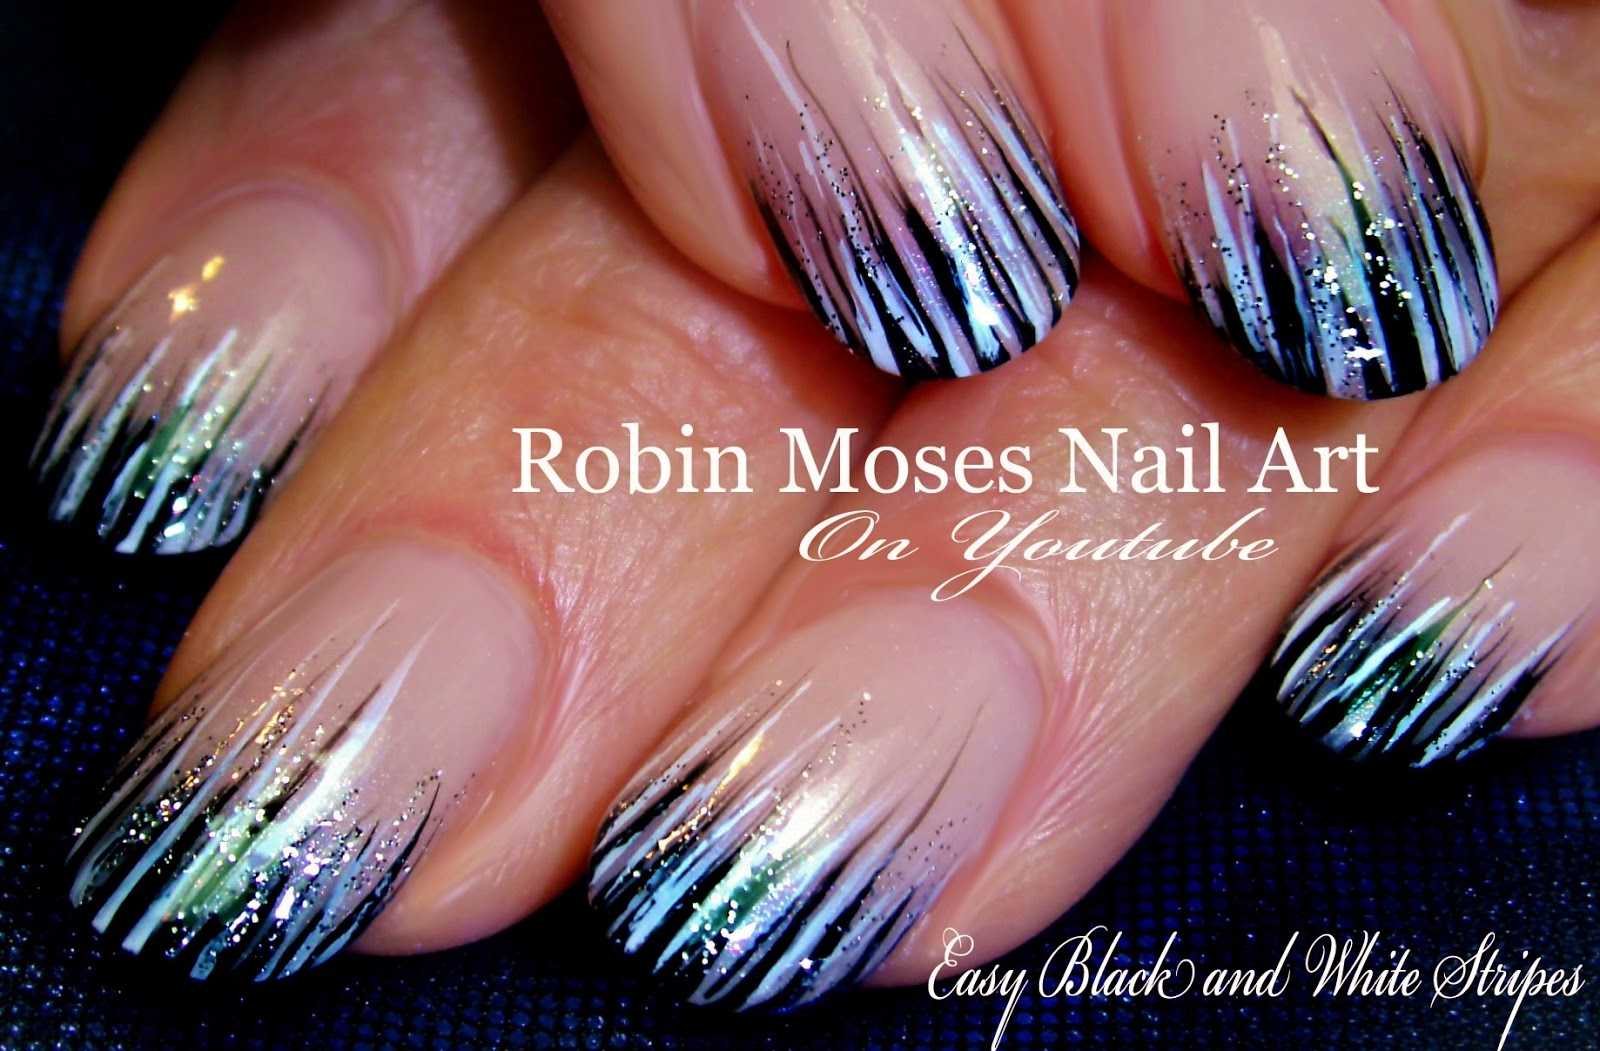 Get My Nail Art Brushes Worldwide On Shopify At Robinmosesnailart Which Links To Store